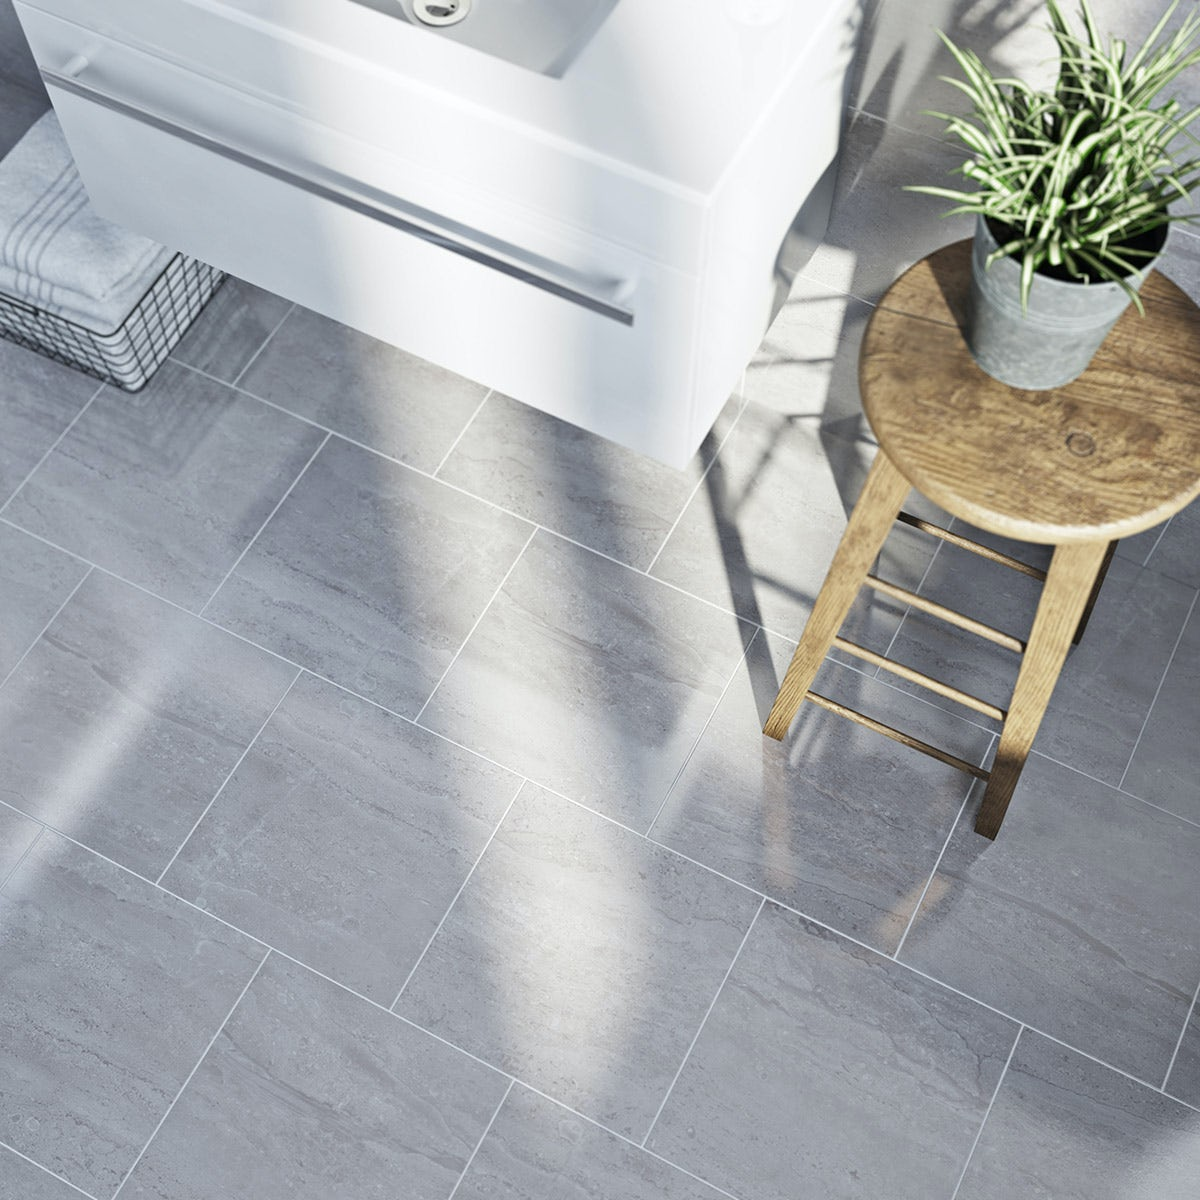 British ceramic tile lux dove grey gloss tile 331mm x 331mm box british ceramic tile lux dove grey gloss tile 331mm x 331mm dailygadgetfo Images